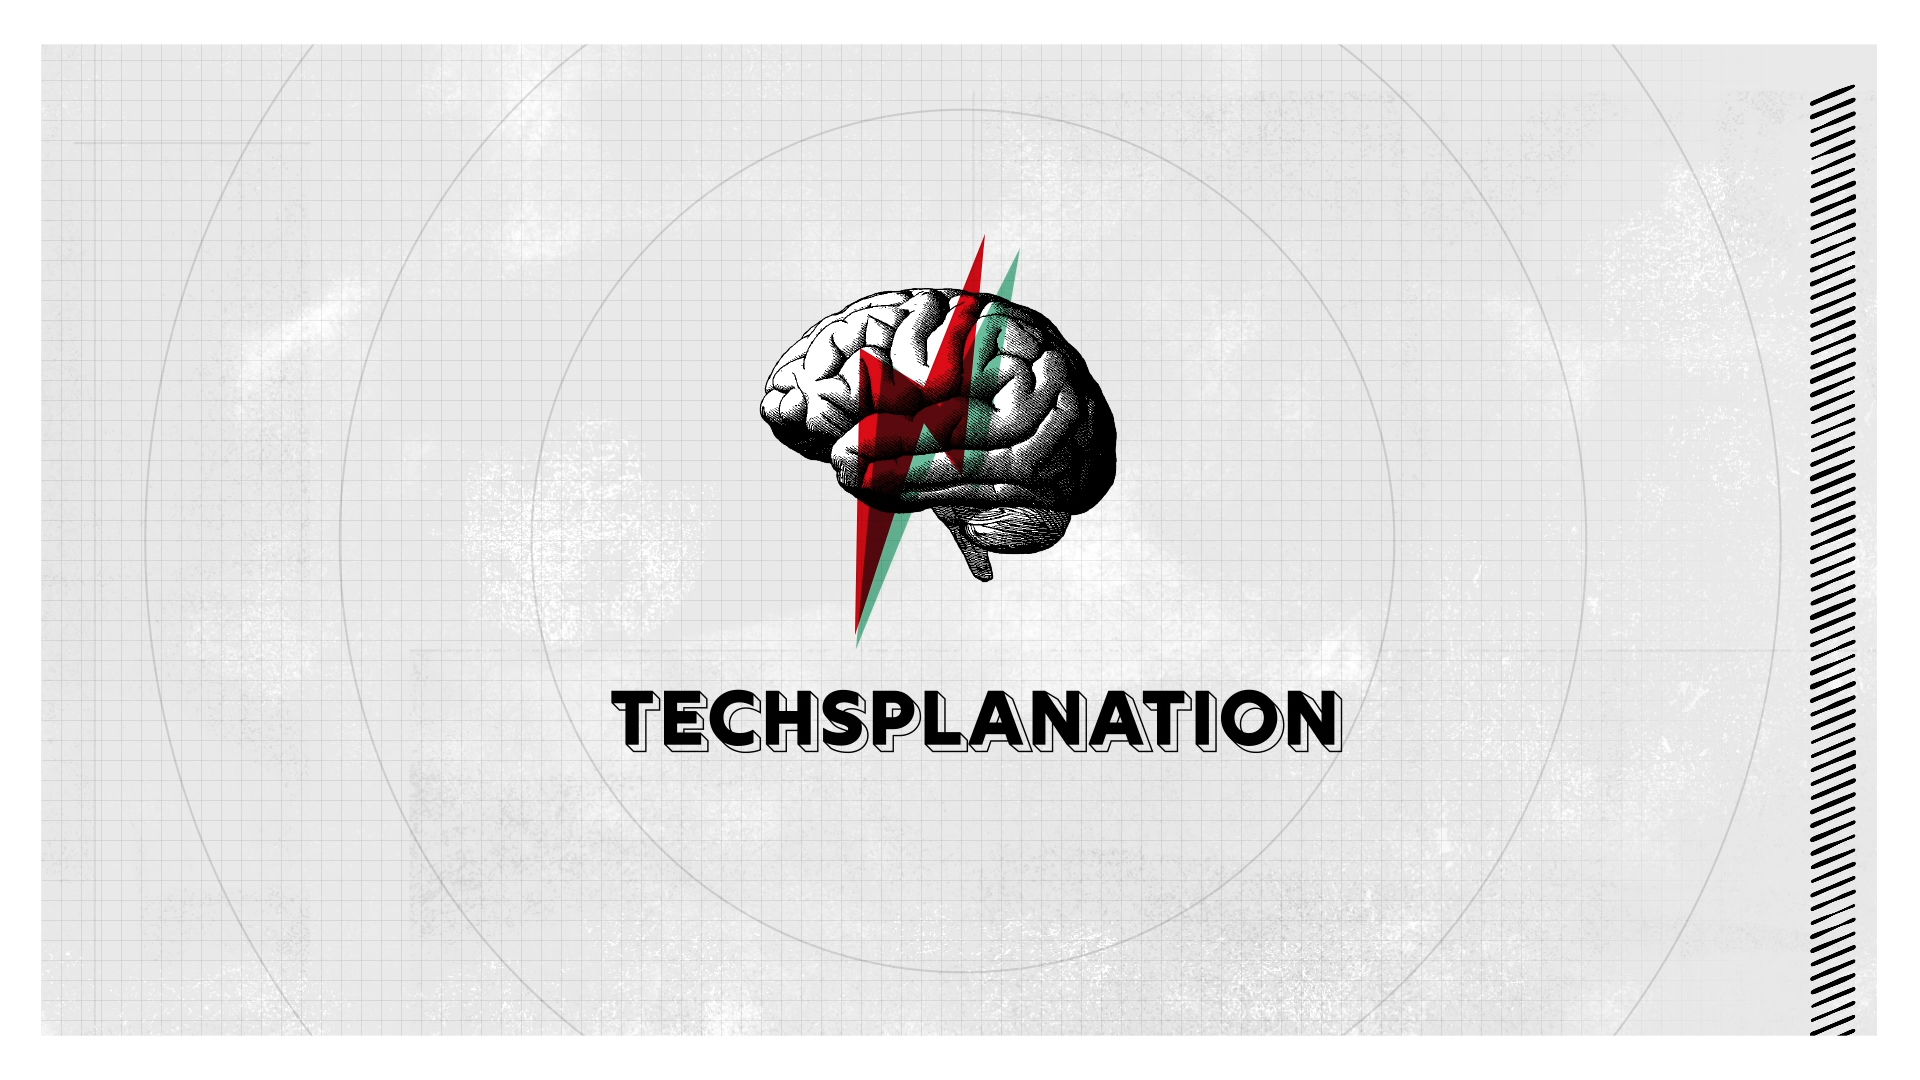 BT Techsplanation